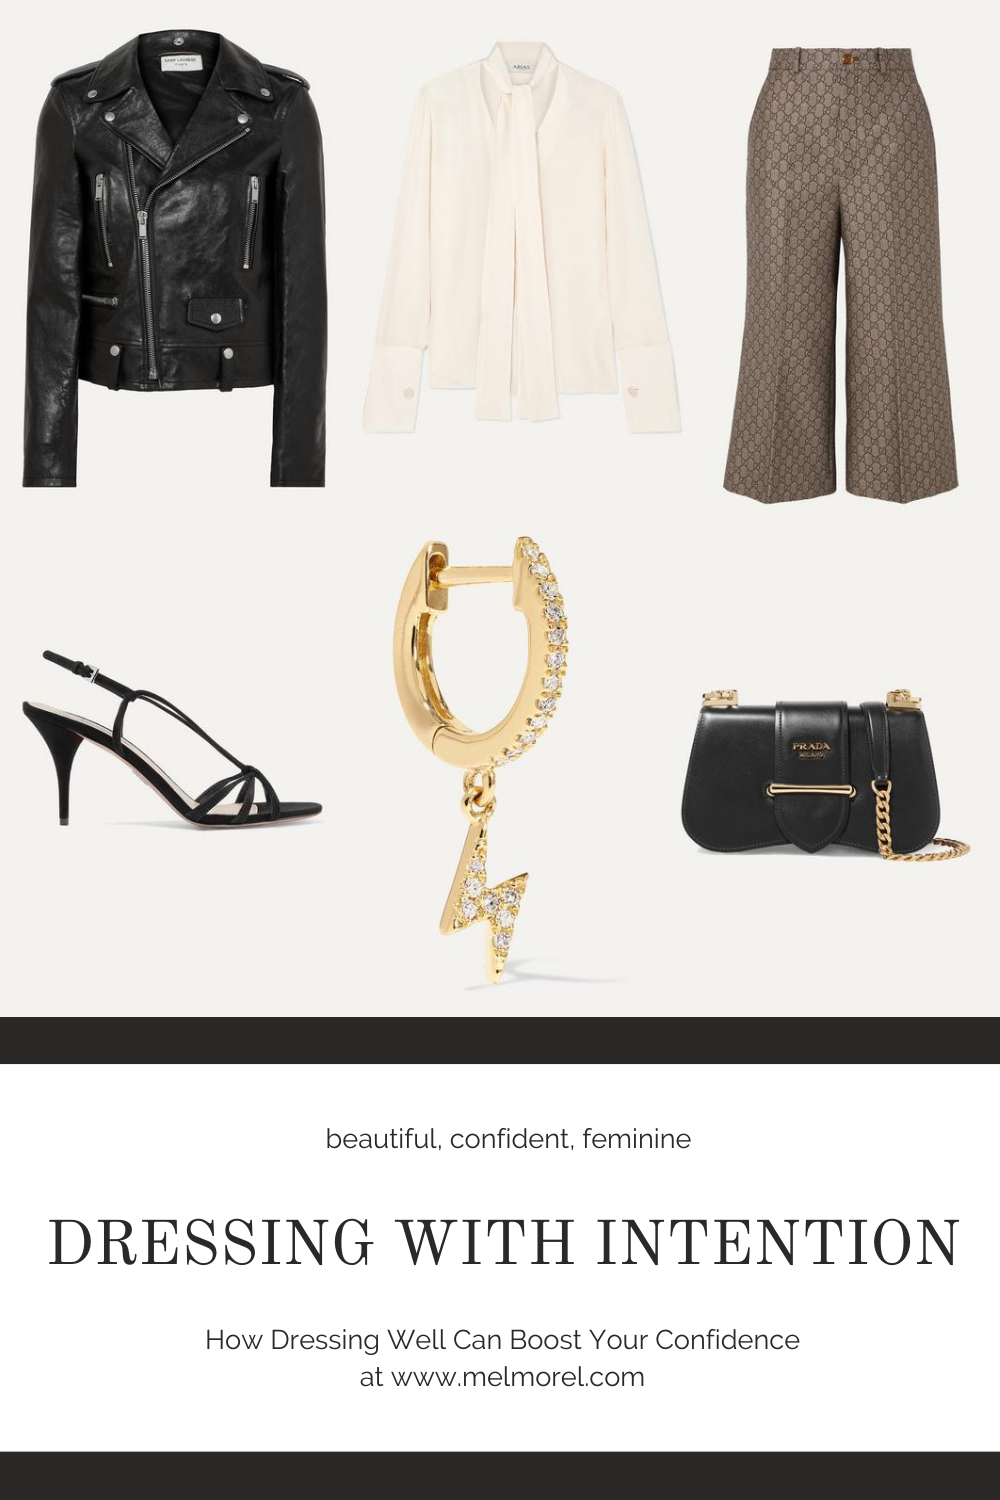 Dressing with intention - stylish - cream silk blouse - black leather jacket